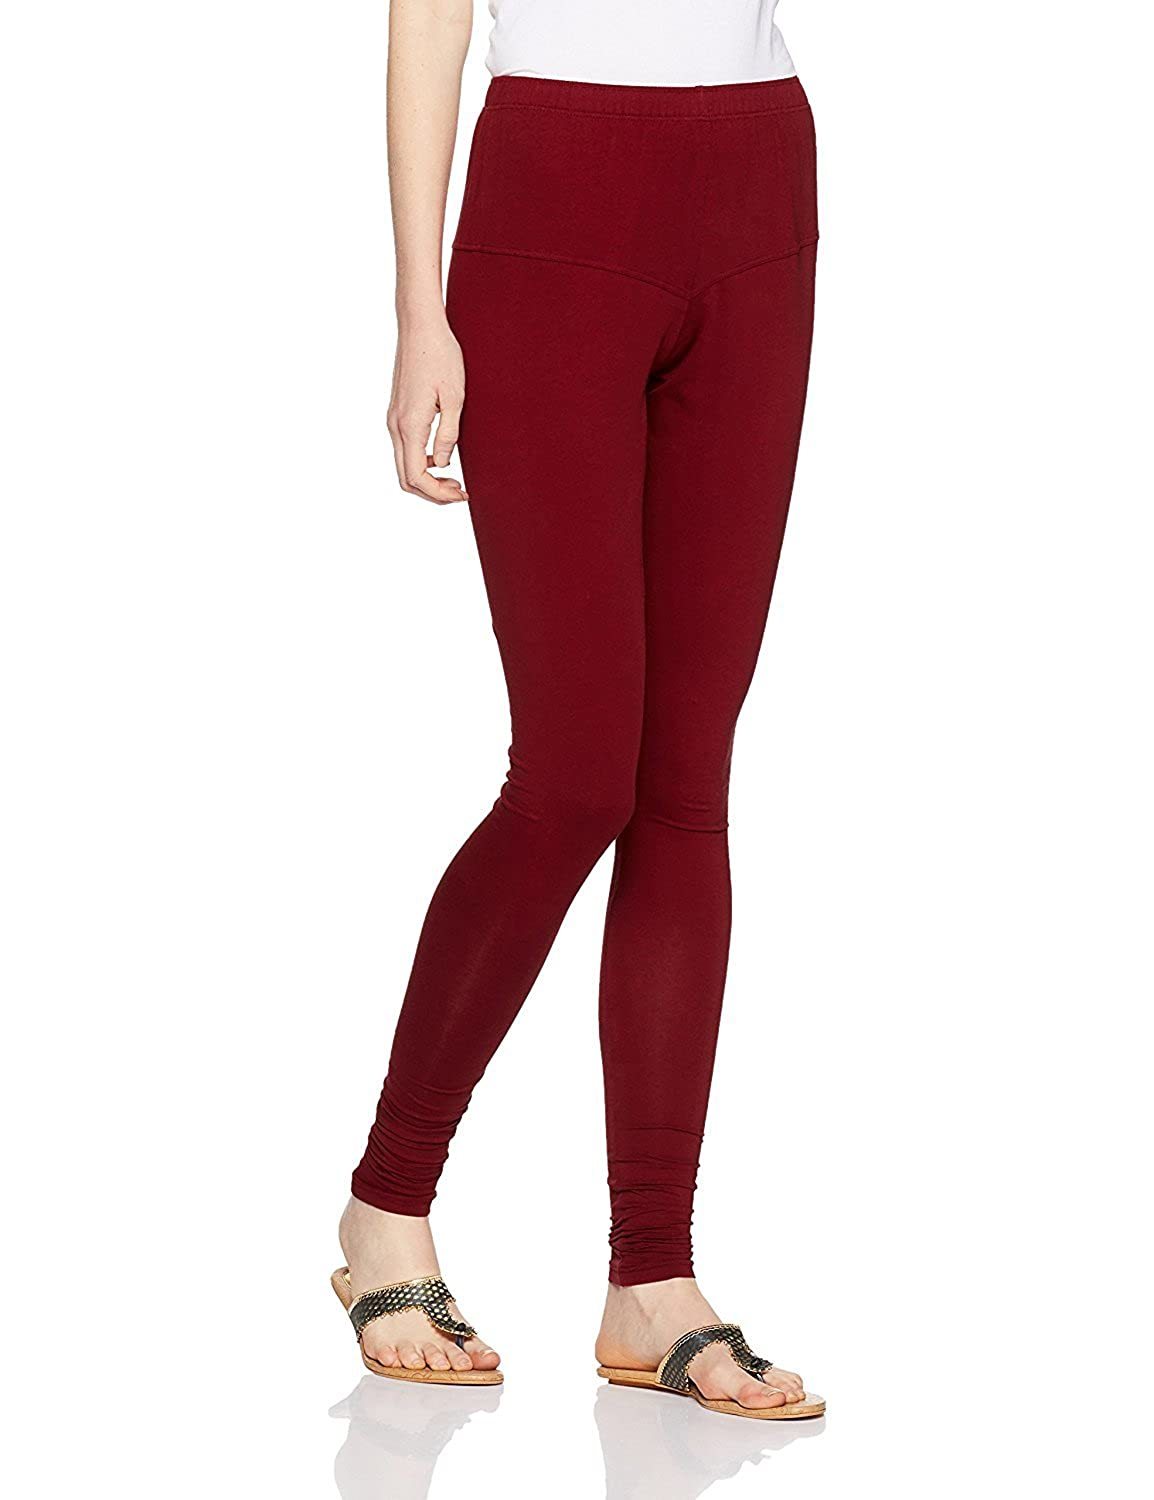 LYRA Women's Maroon Churidar Leggings